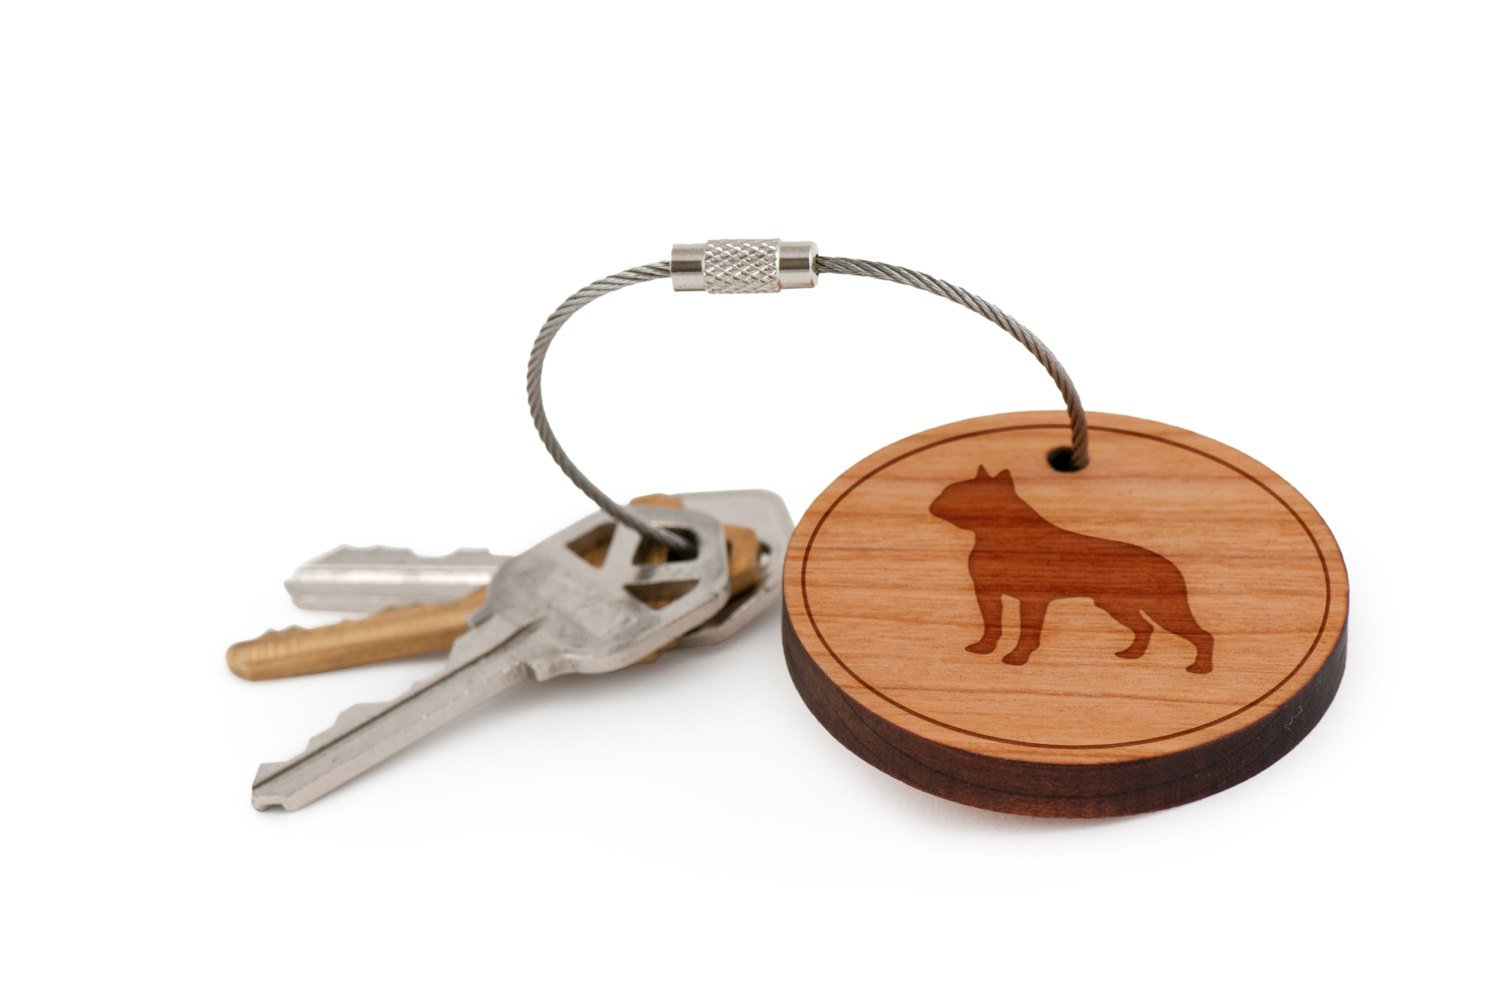 Boston Terrier Keychain, Wood Twist Cable Keychain - Large WoodenAccessoriesCo